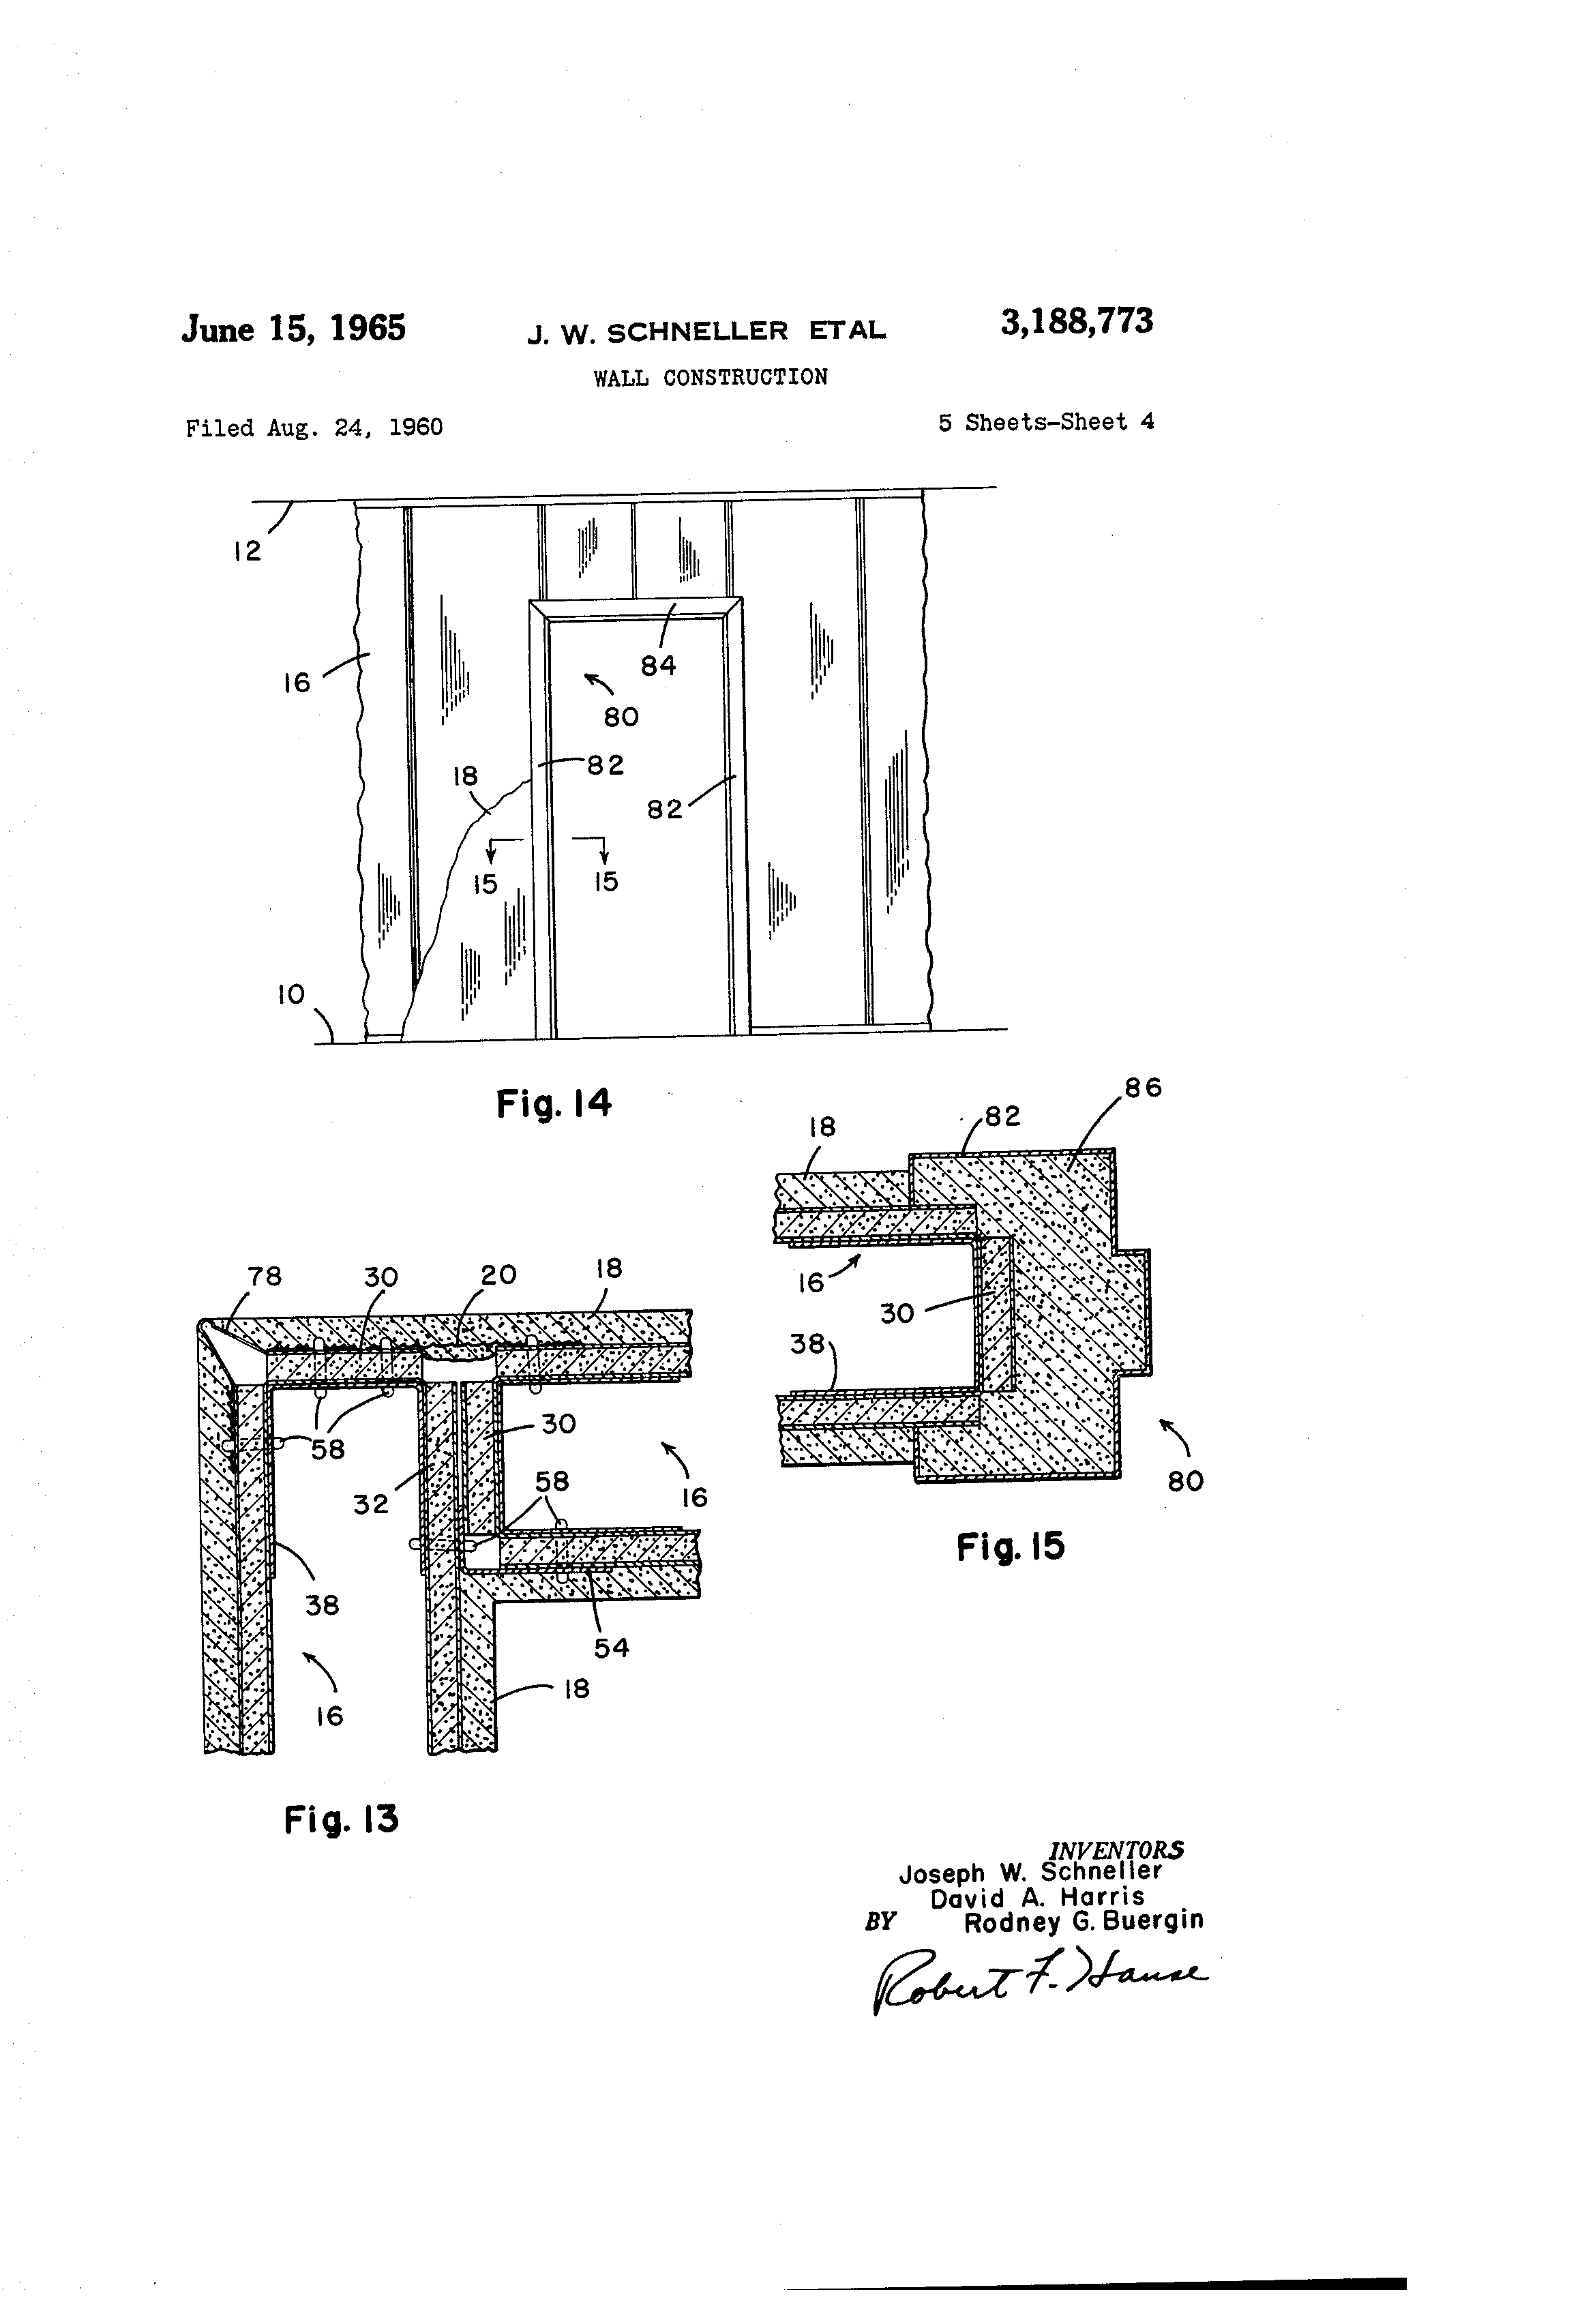 Wall Construction In Us : Patent us wall construction google patents